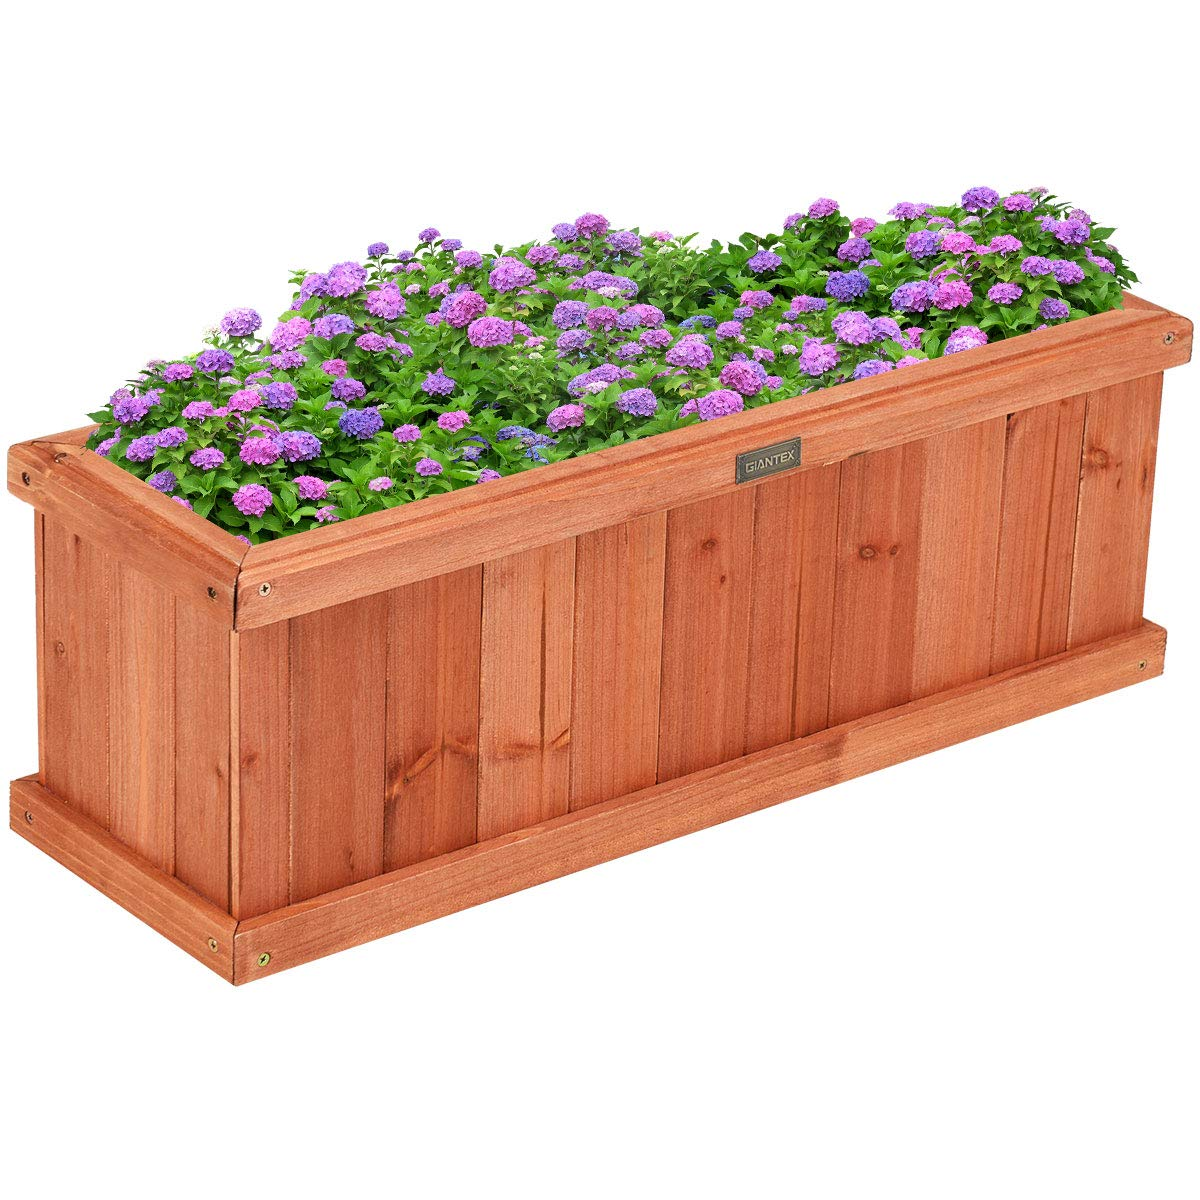 Giantex Raised Garden Bed Flower or Vegetable Planter Window Mounted Plant Box for Garden, Yard Wood Box for Planting (28'' LX9 WX10 H) by Giantex